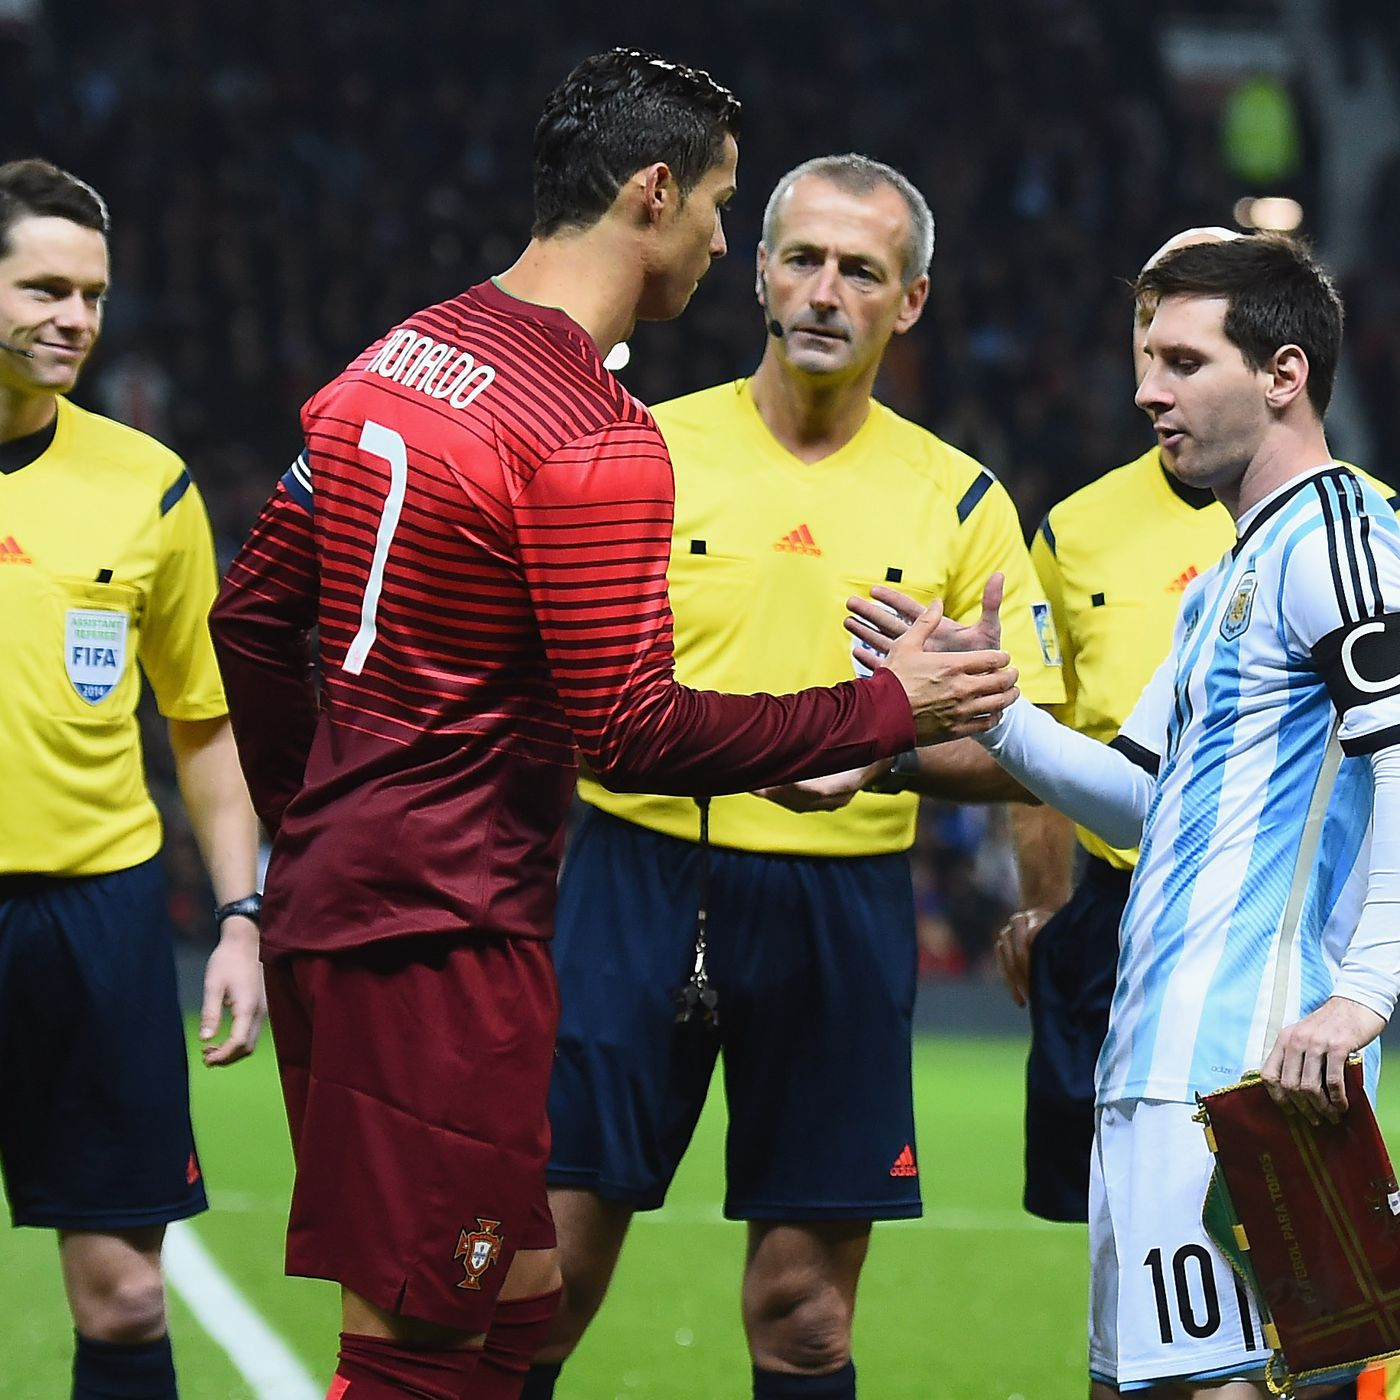 Lionel Messi And Cristiano Ronaldo Debunking The Myth Managing Madrid